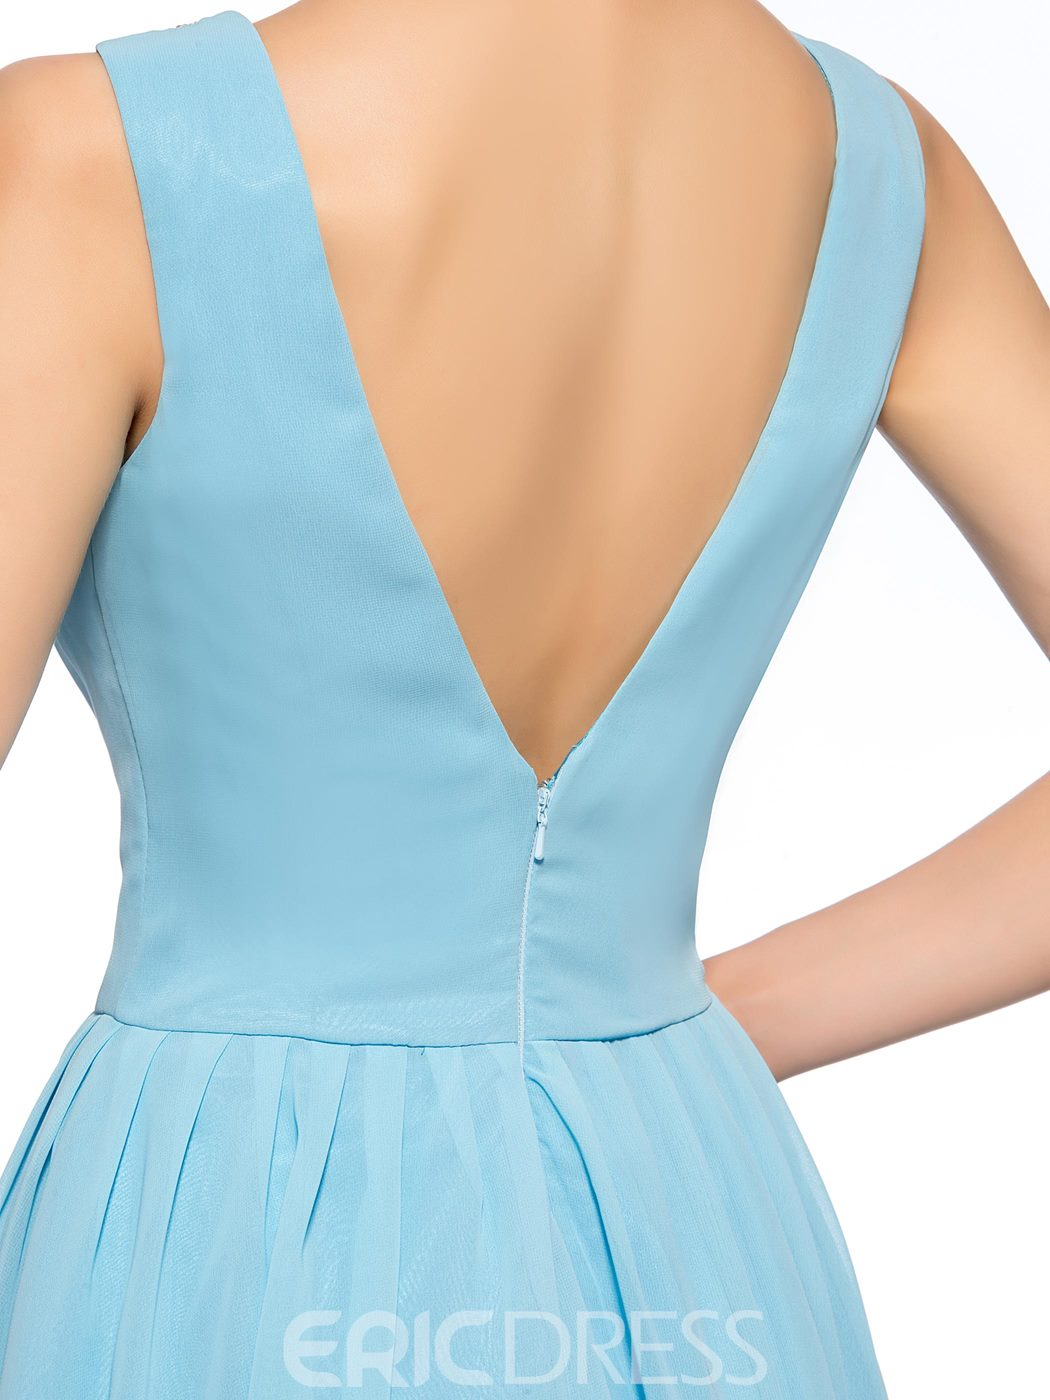 Charming A-line Bateau Neck Beadings Short Homecoming Dress